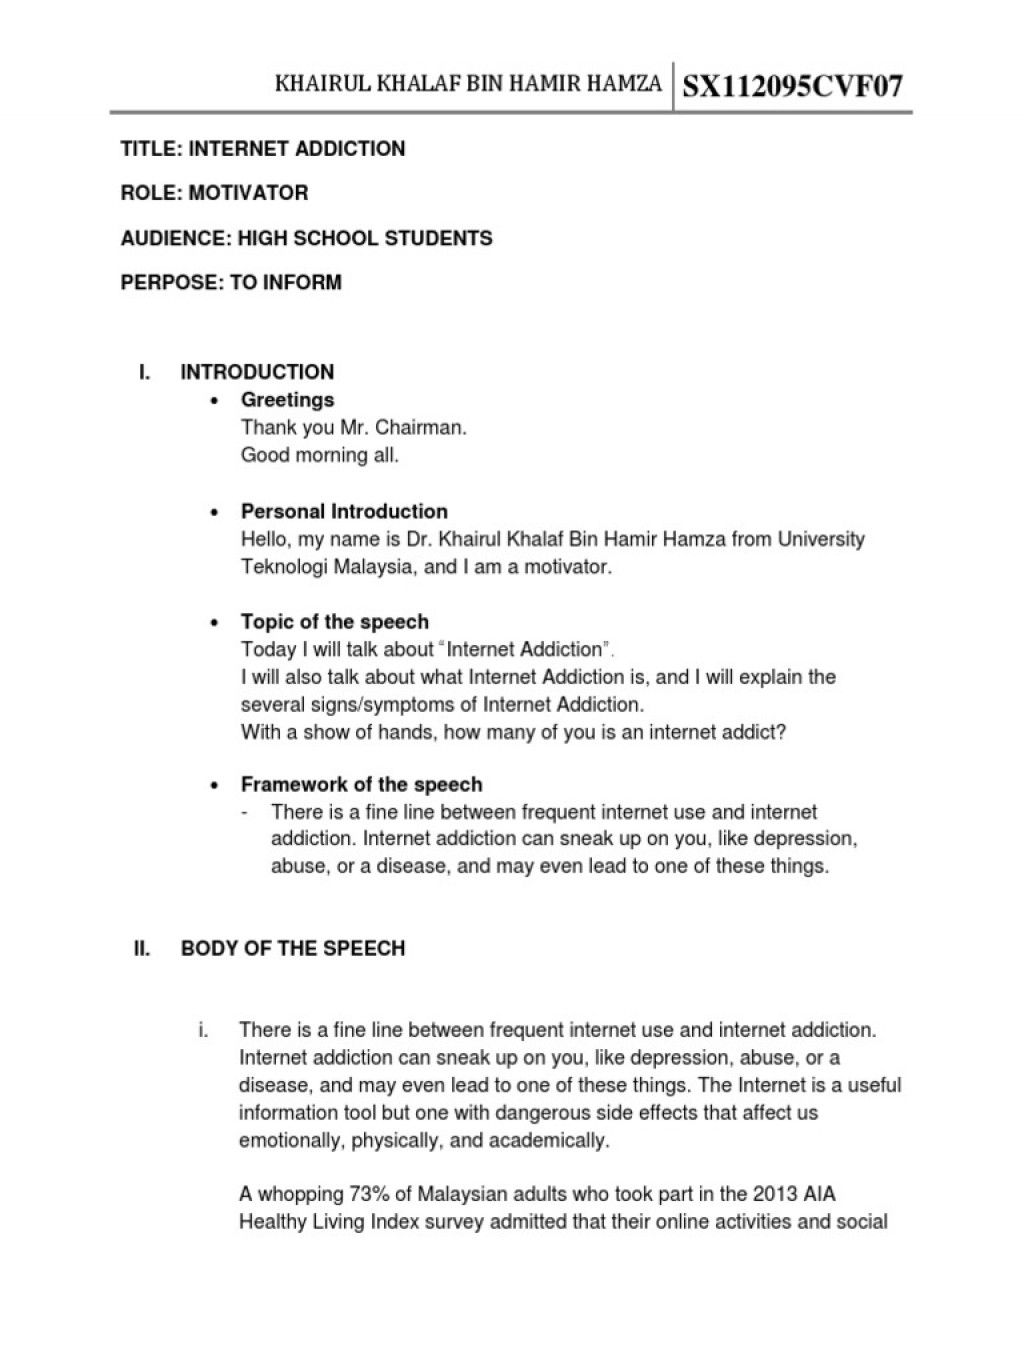 019 Cancer Essay Stanford Mba Help The Movie Topics Hendricks Imca Breast Outline Paper Top Treatment Questions Short On In Hindi Cervical Conclusion Large